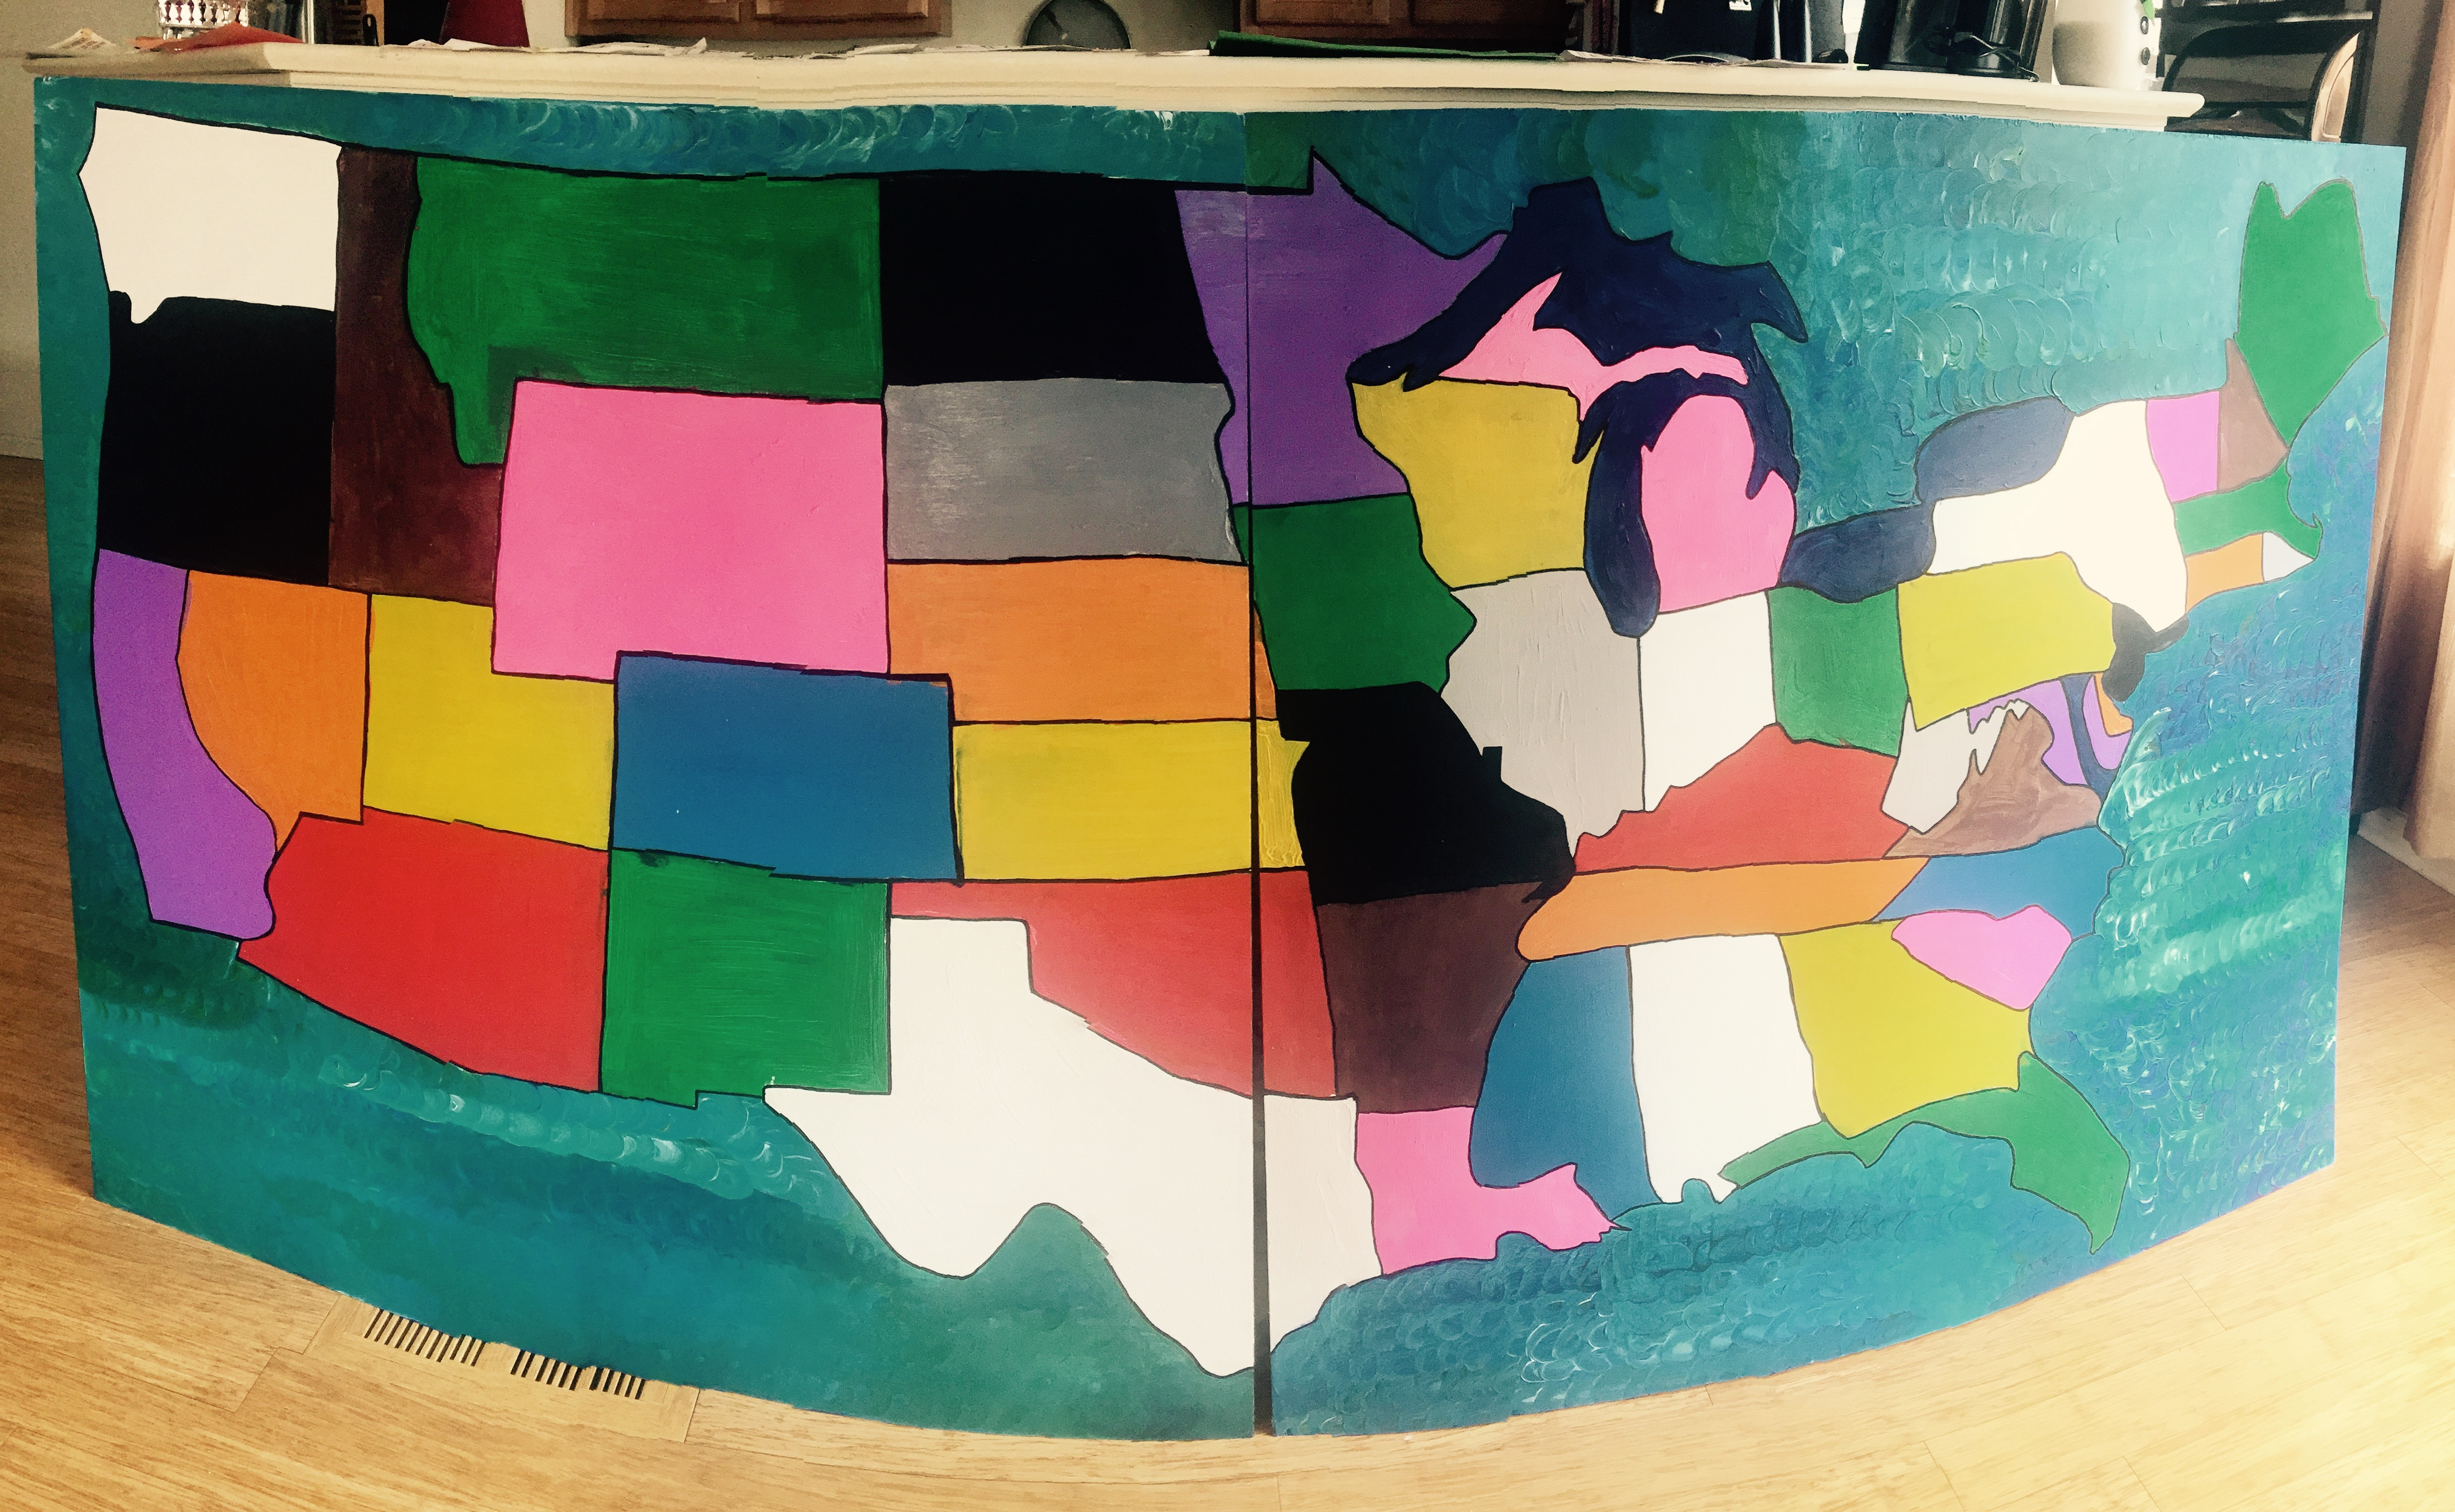 USA Map Ready for Bottle Caps